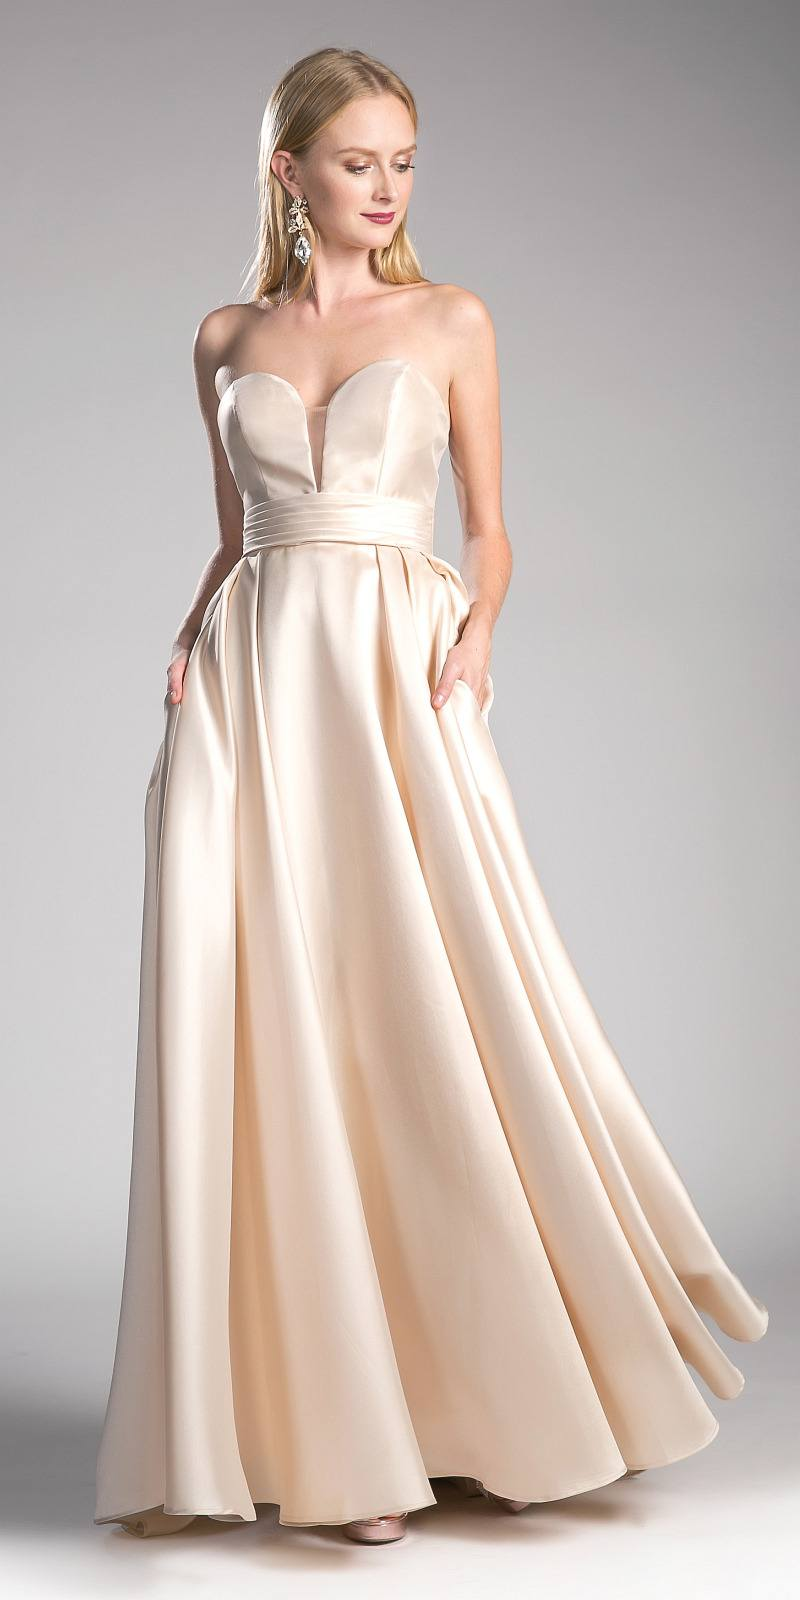 0a9d32a1ce392 ... Cinderella Divine CJ213 Champagne Strapless Ball Gown Prom Dress Empire  Waist Lace Up Back ...